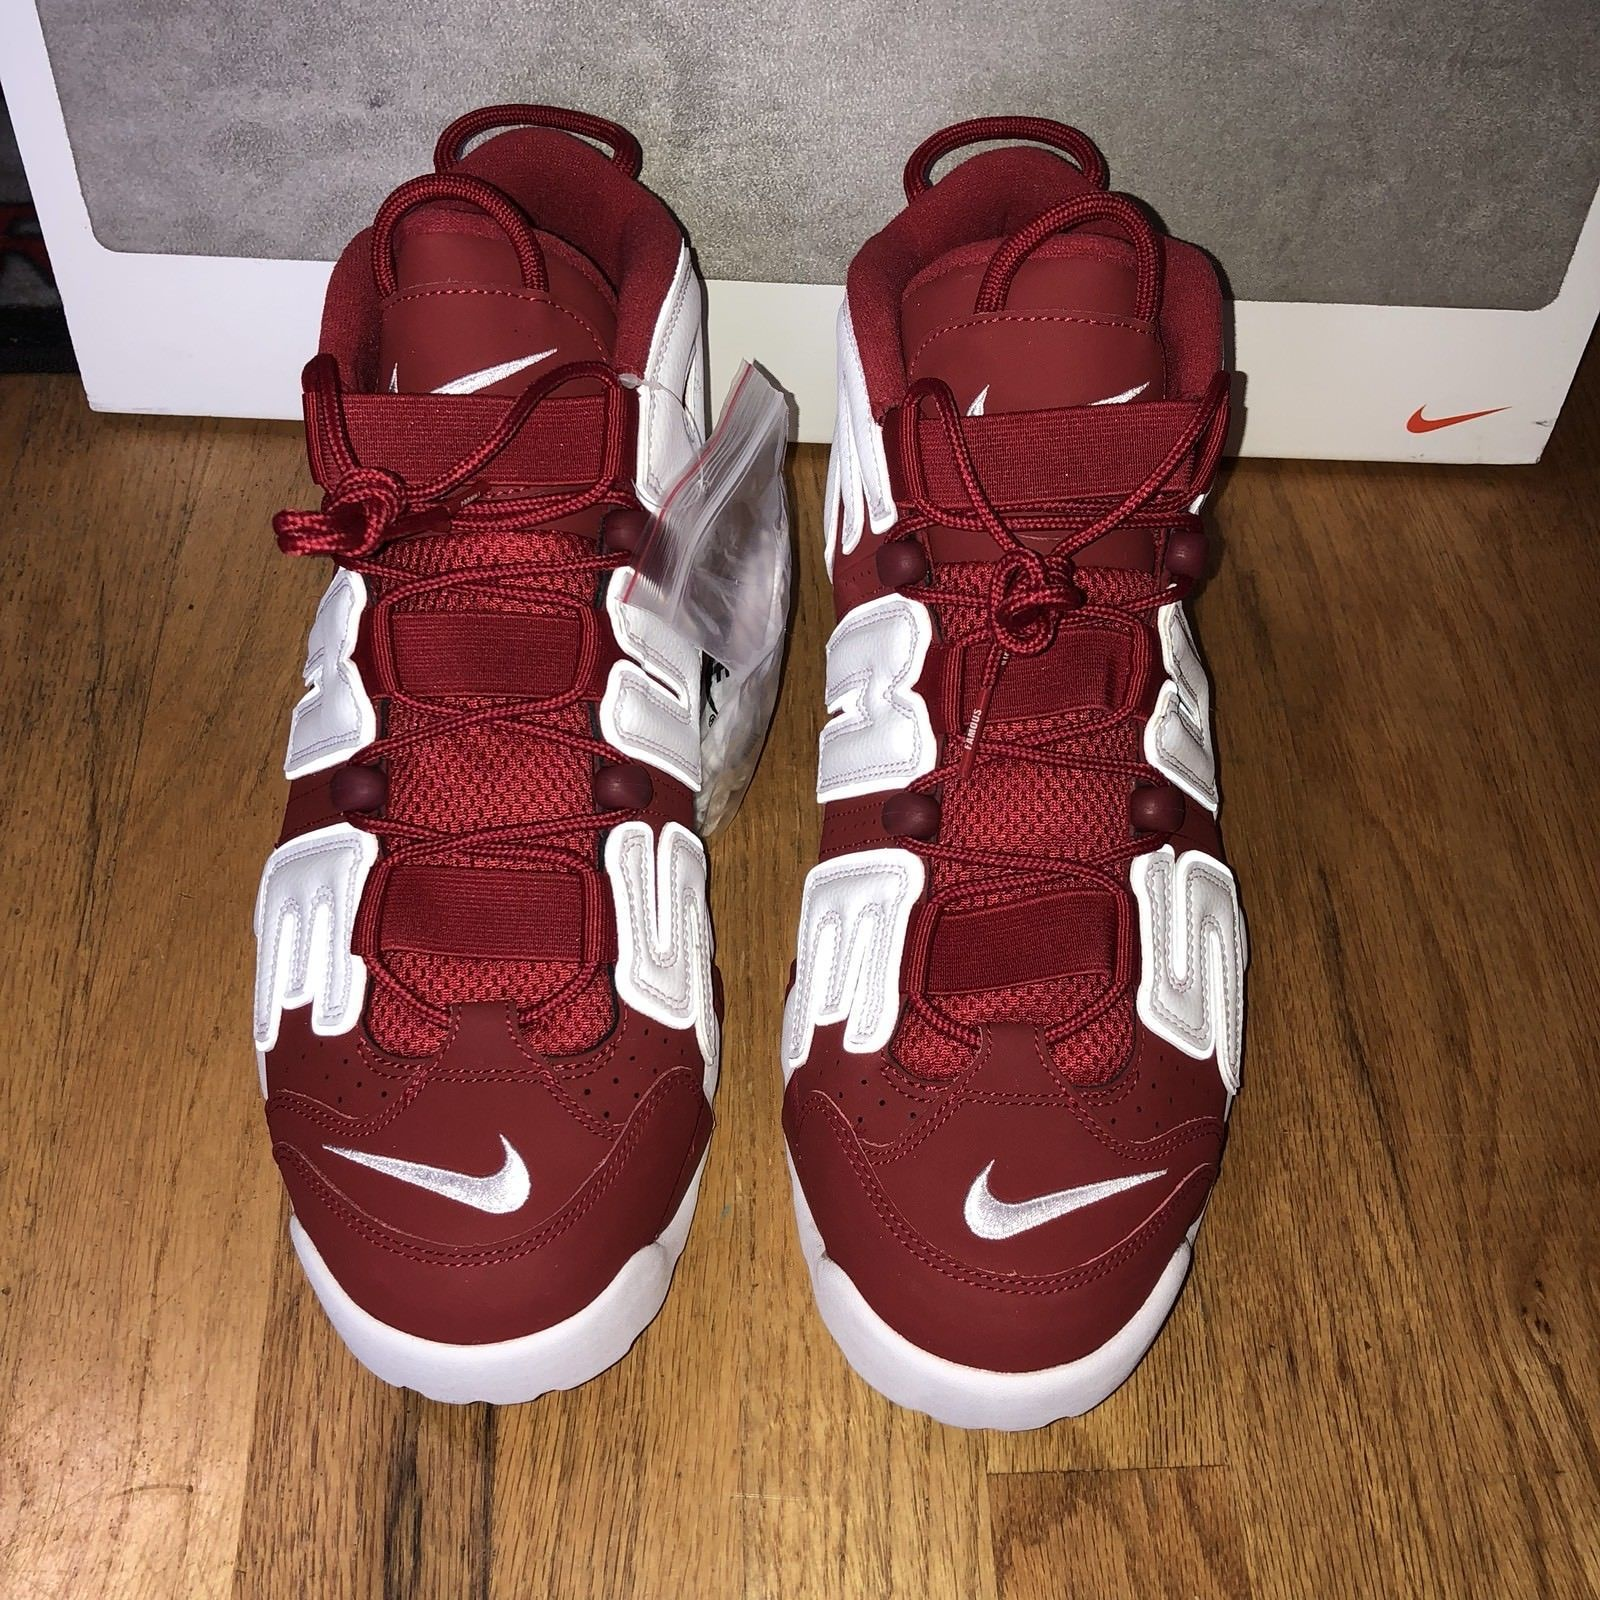 Supreme Nike Air More Uptempo Suptempo Red White 902290-600 Mens Shoes Size  12